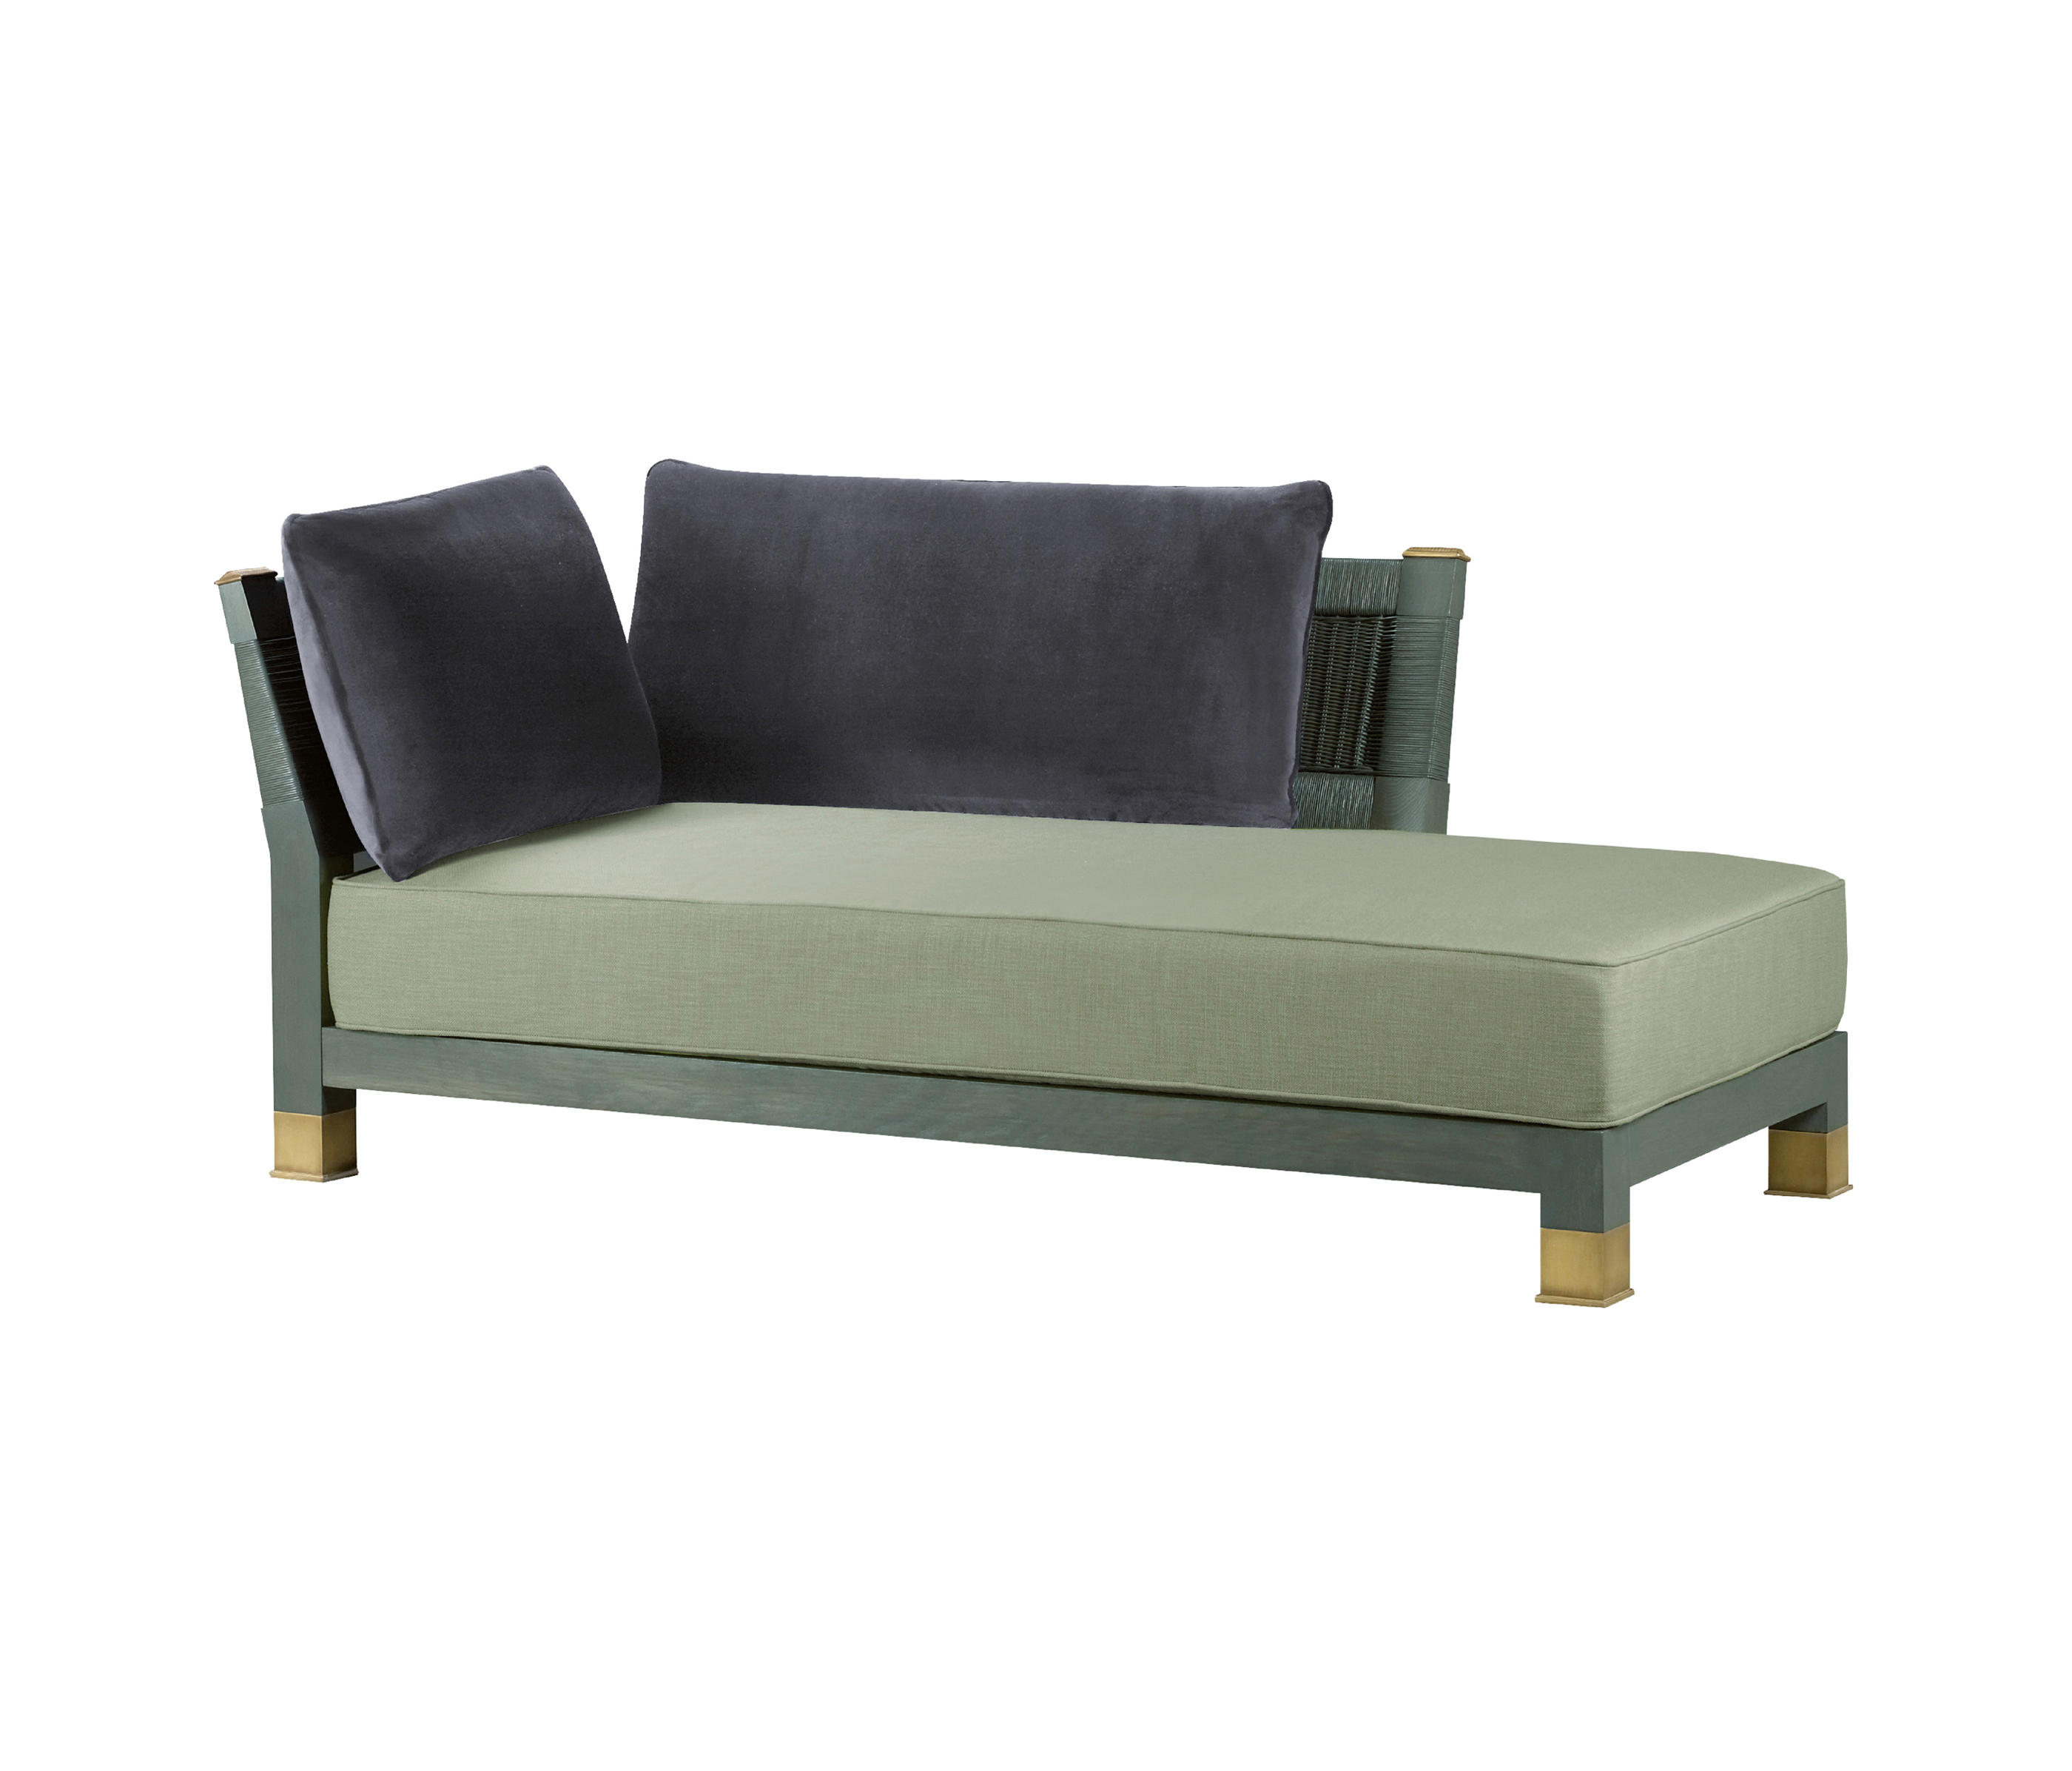 Chaise longue sofa 485 forum sofa with chaise longue by for Chaise longue style sofa